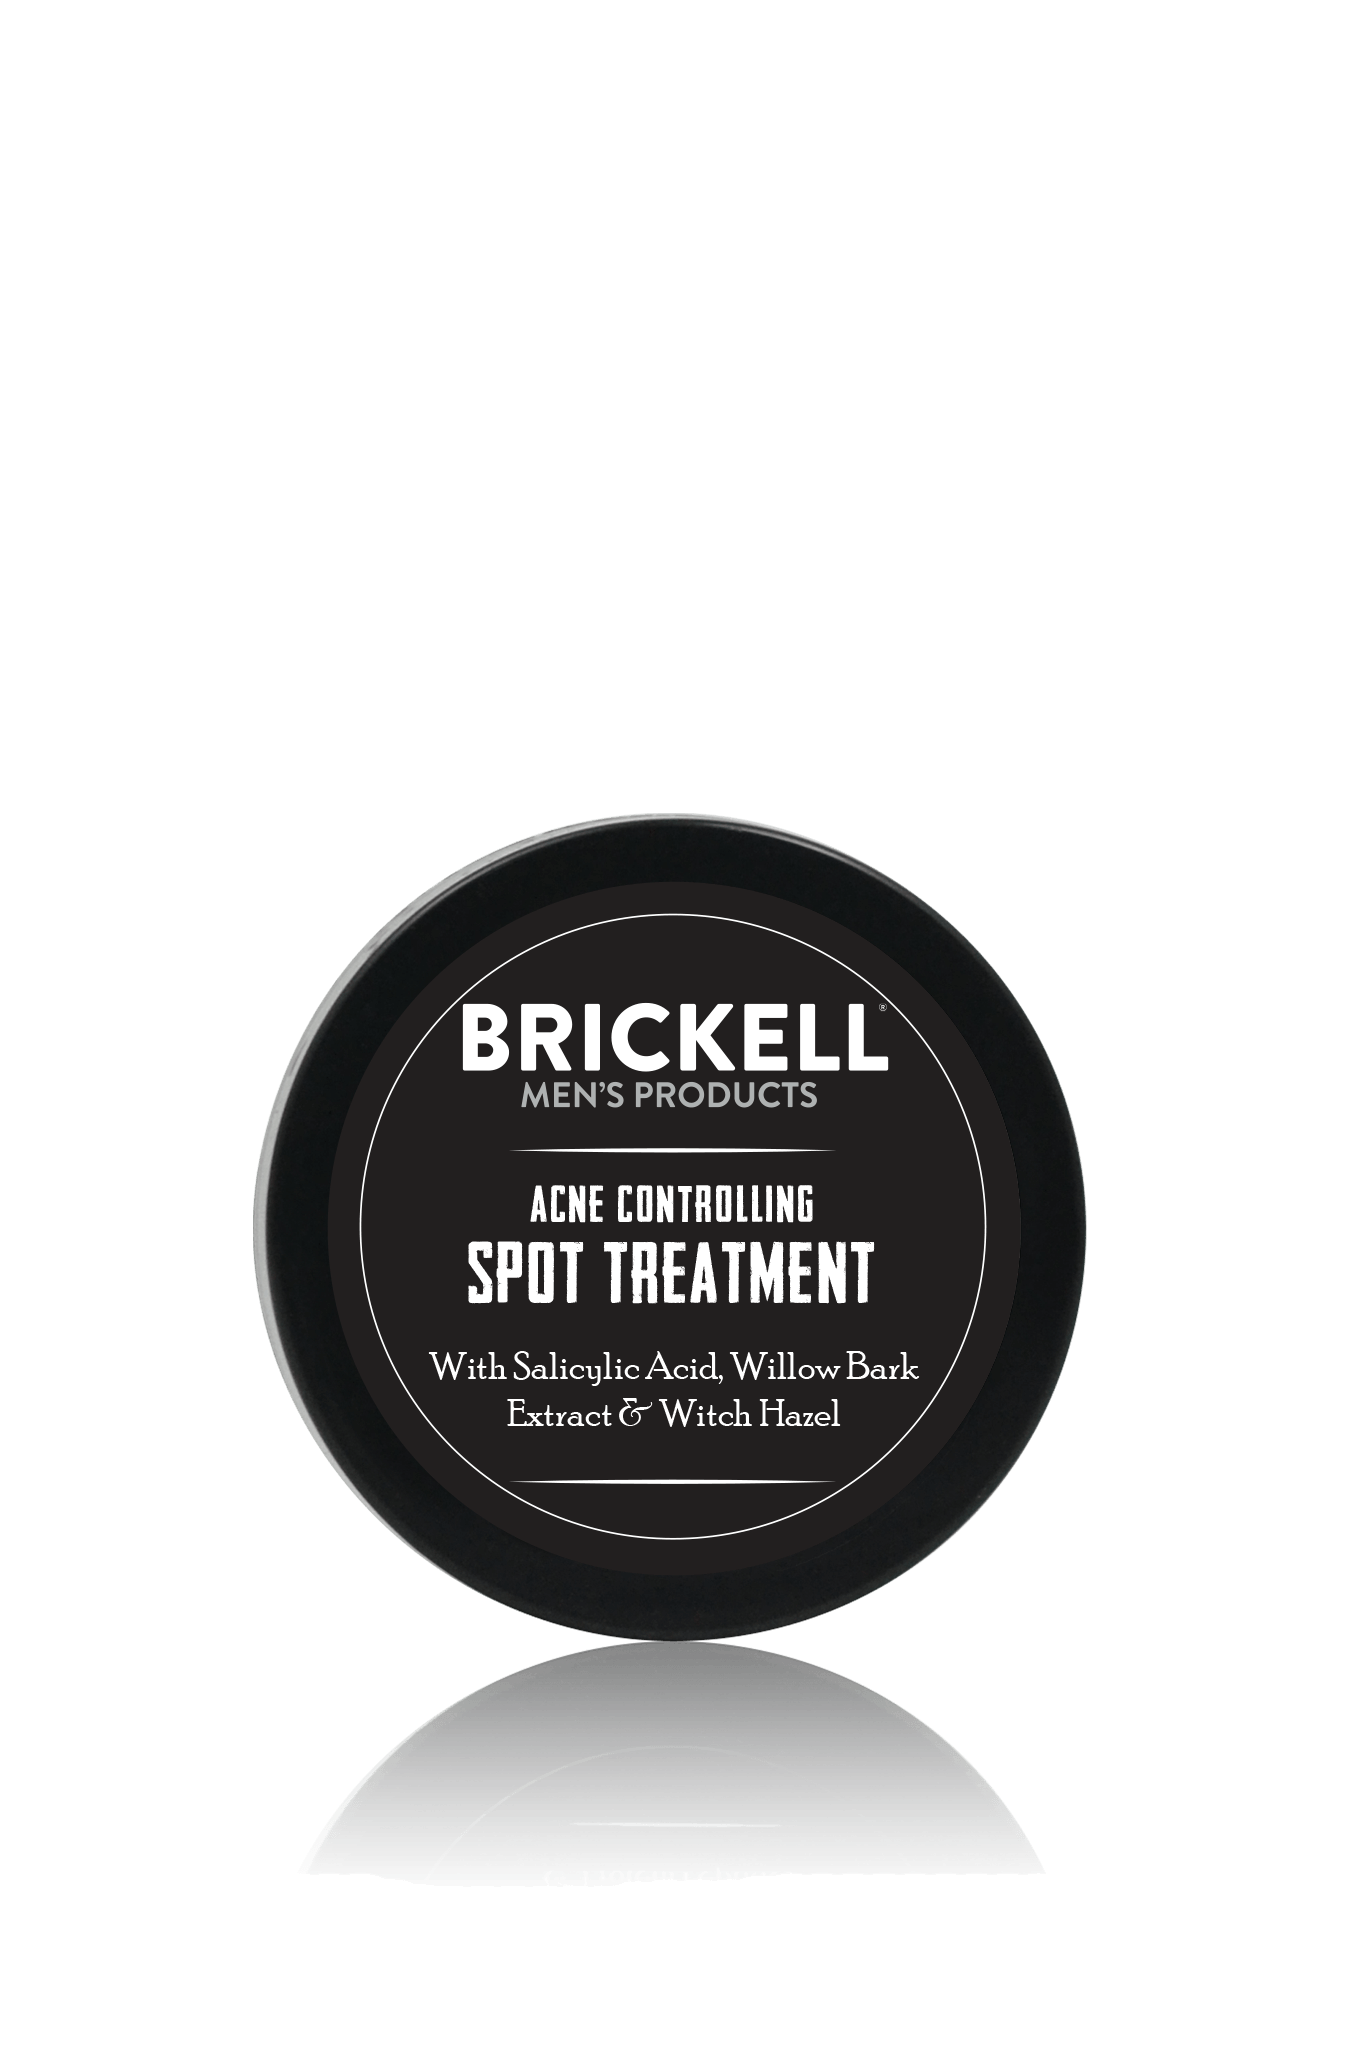 Best Acne Controlling Spot Treatment For Men Brickell Men S Products